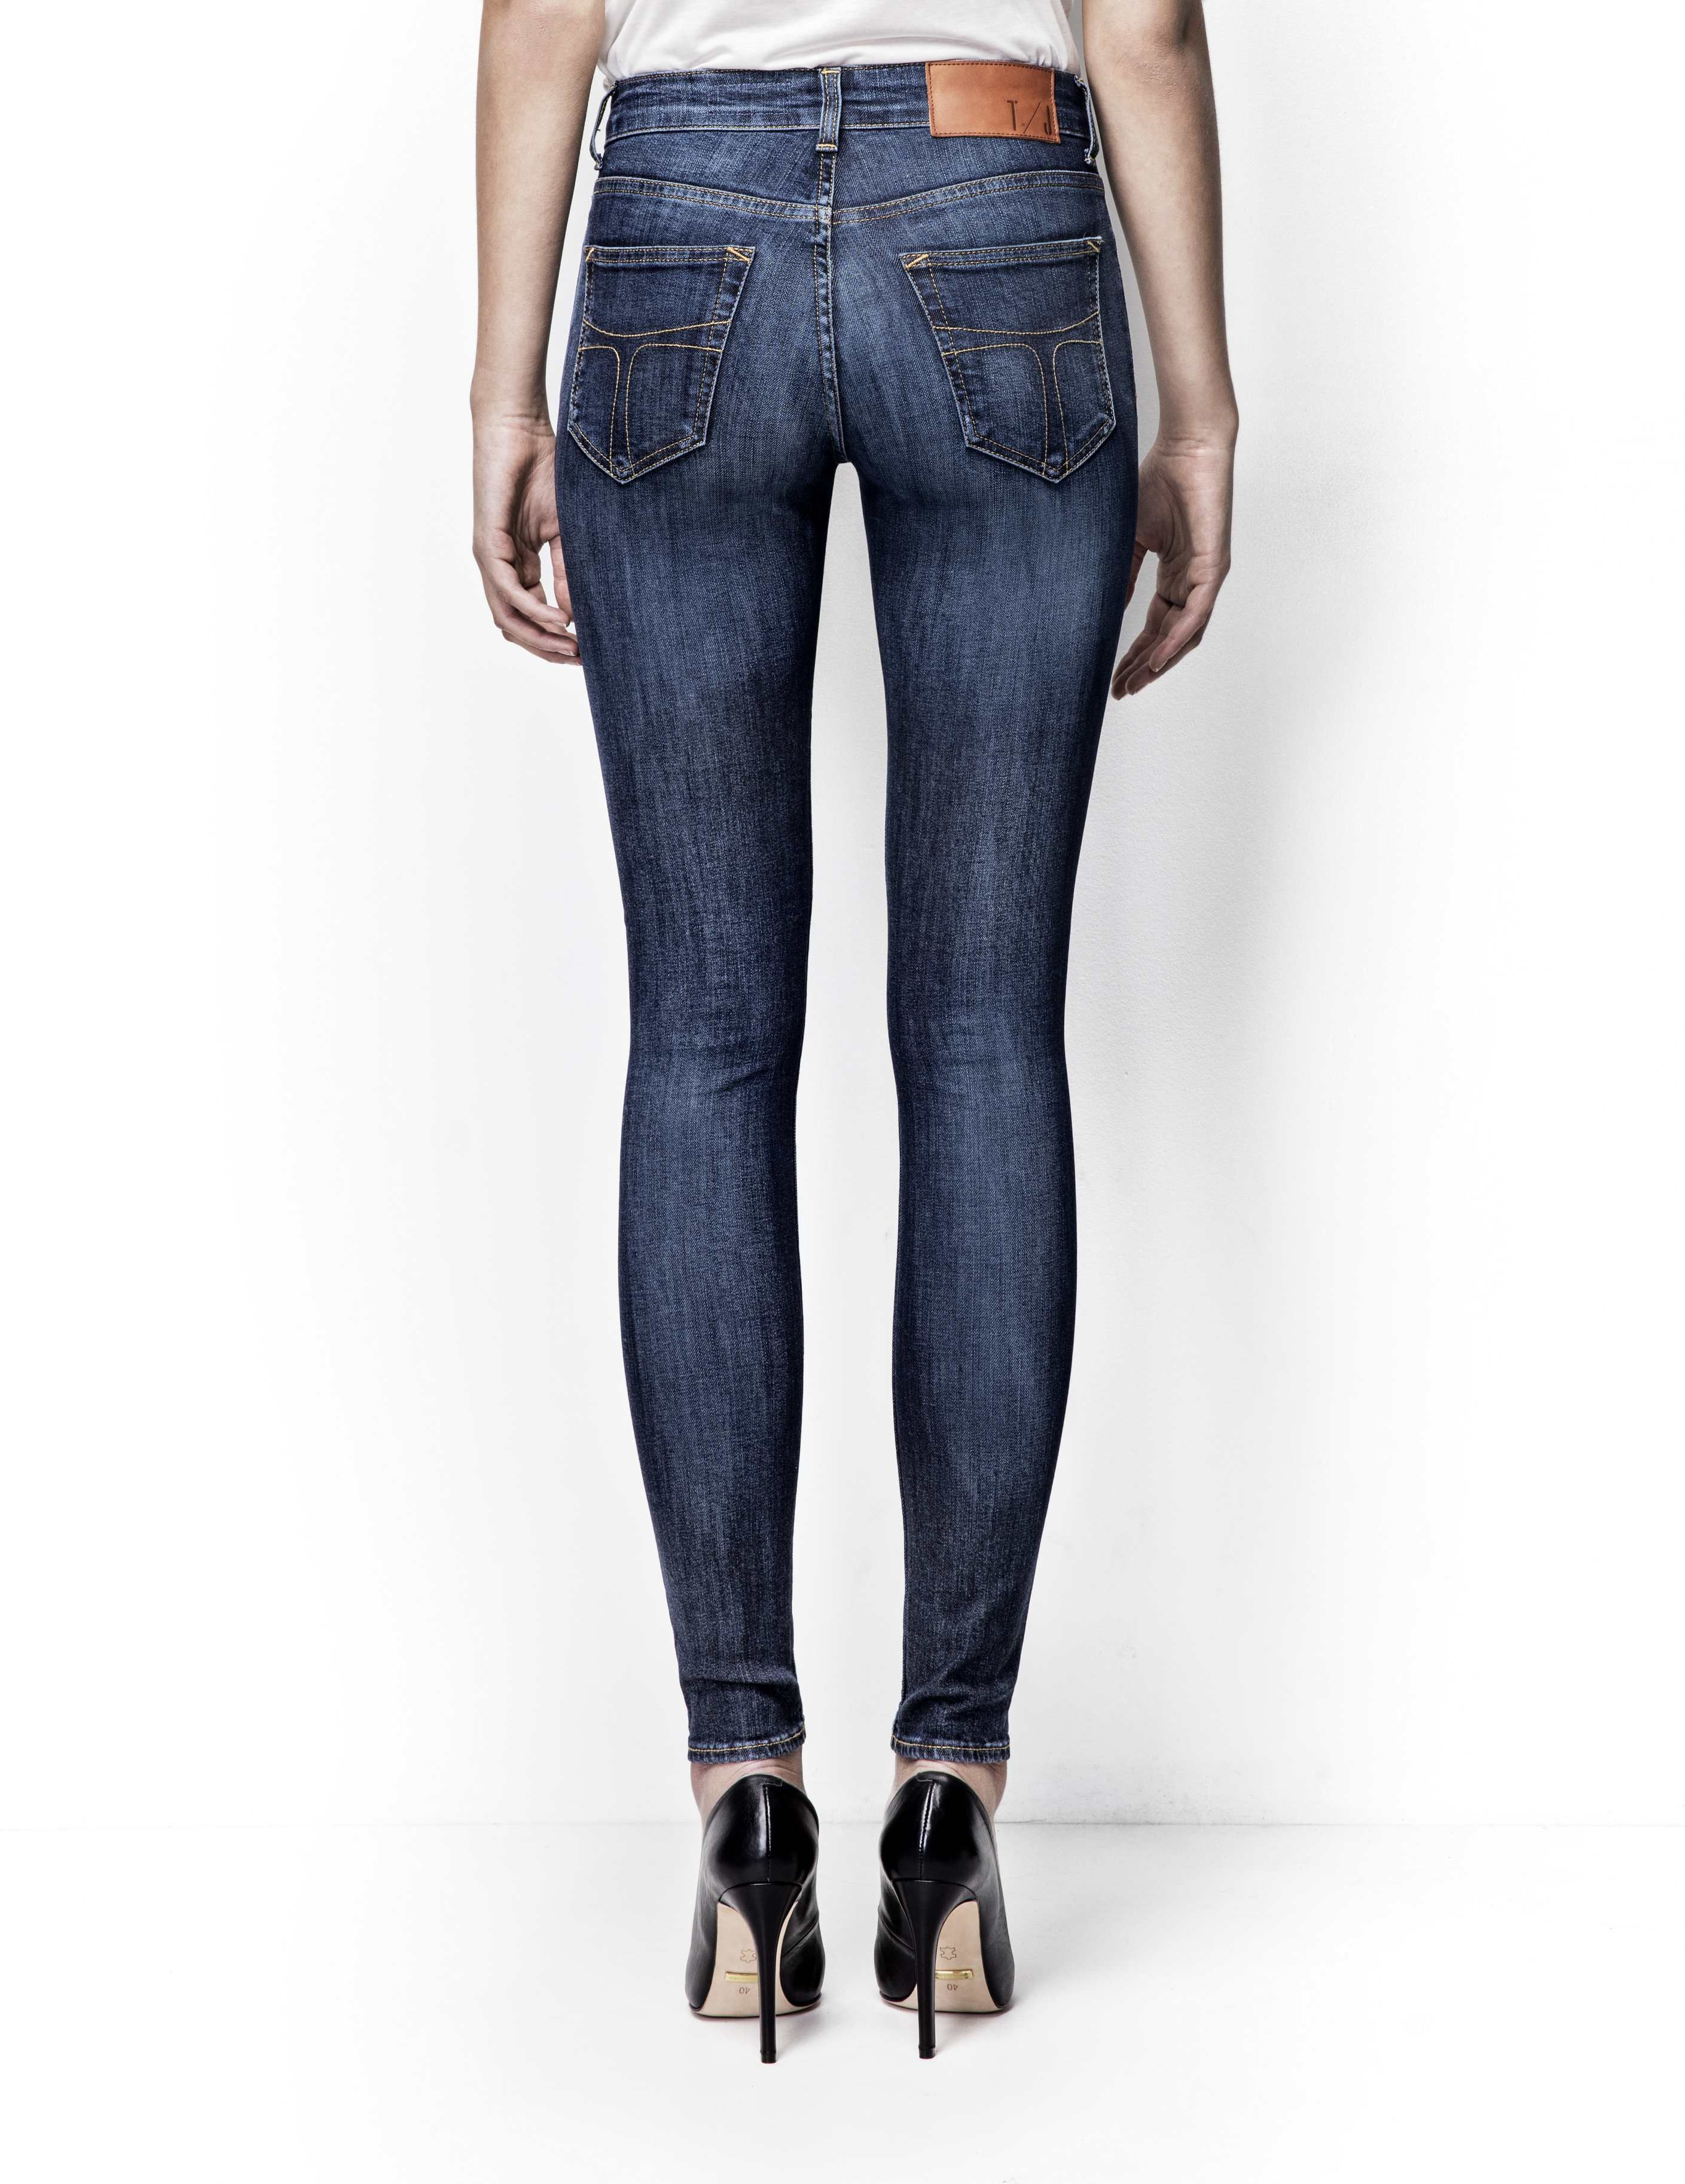 990a8d99ced4a9 Tiger of Sweden Jeans, Slight jeans-Women's mid-waist, super-slim leg,  five-pocket jeans in 11.5-ounce denim. The wash is called